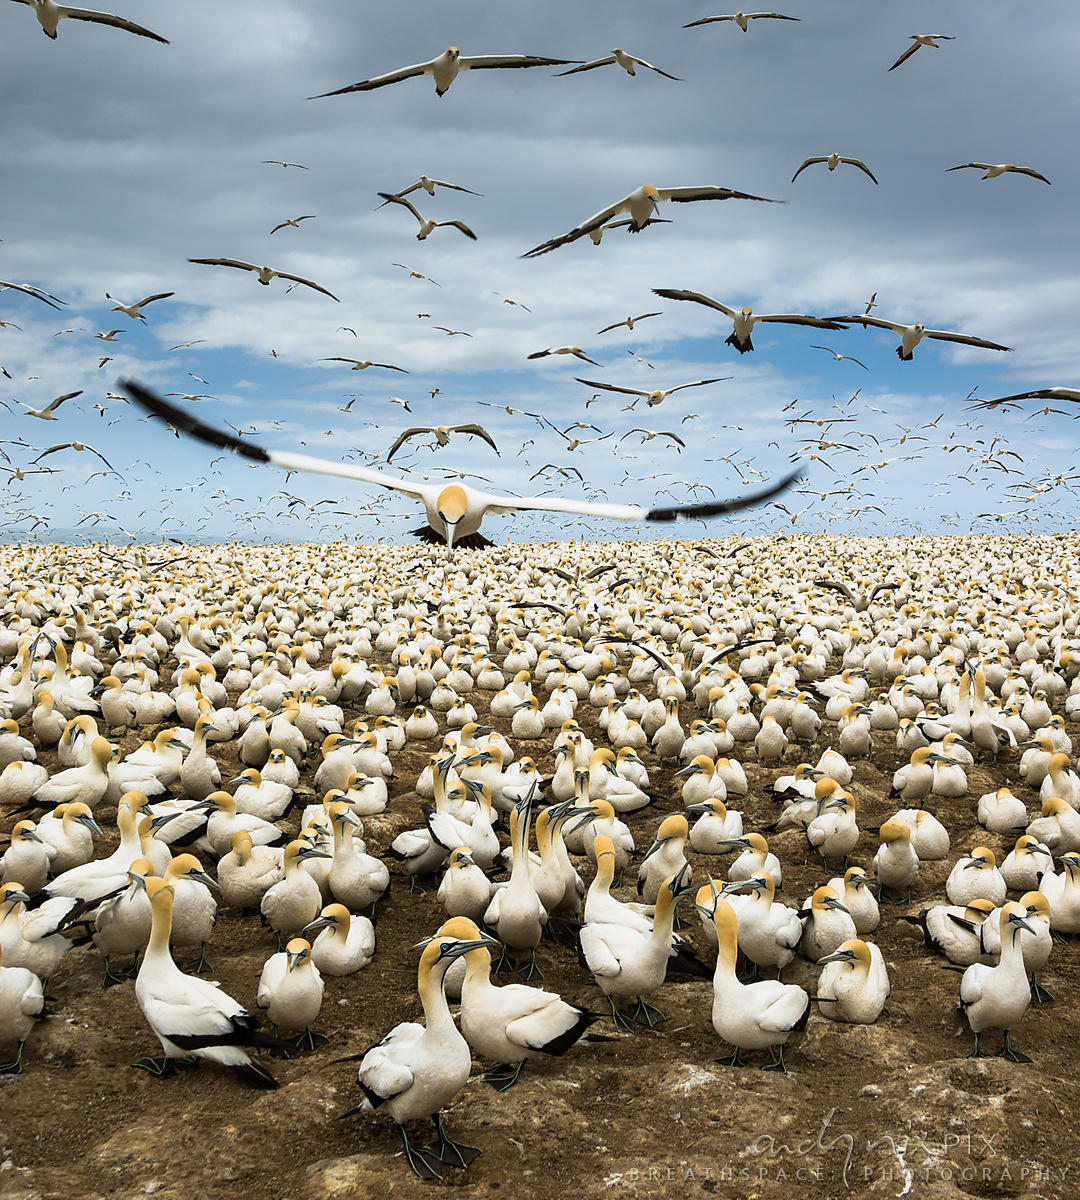 Gannets nesting on Bird Island, Eastern Cape